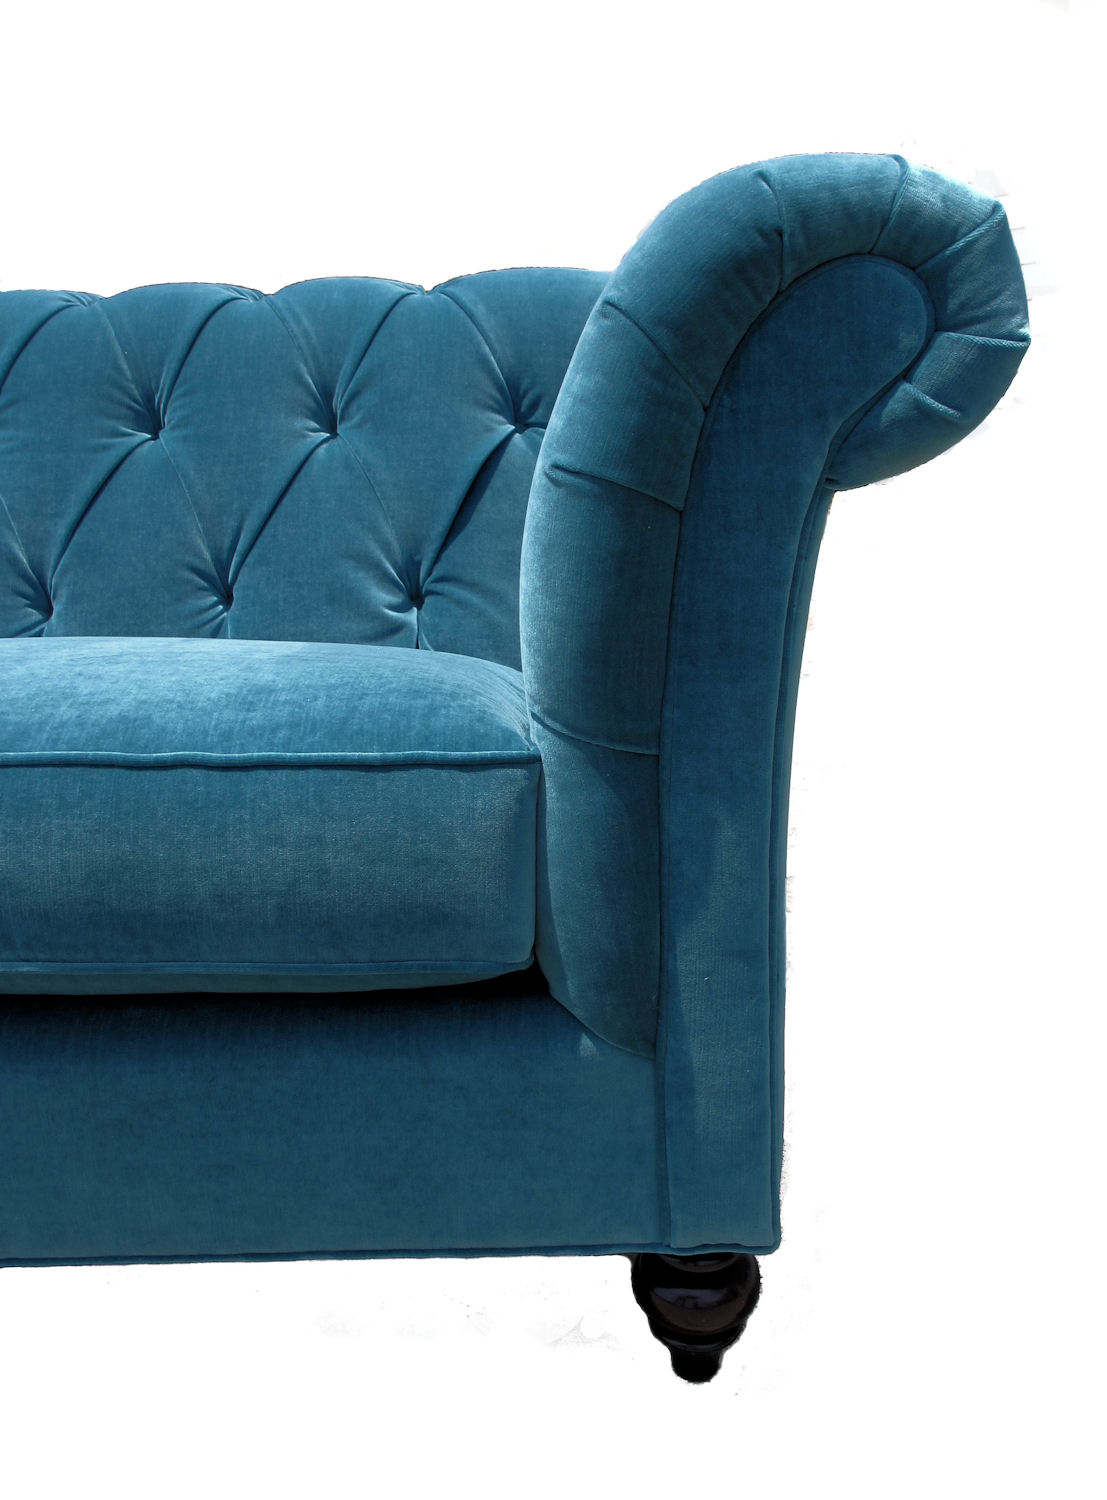 Peacock Blue Tufted Sofa : DesignFolly - Be House Happy!